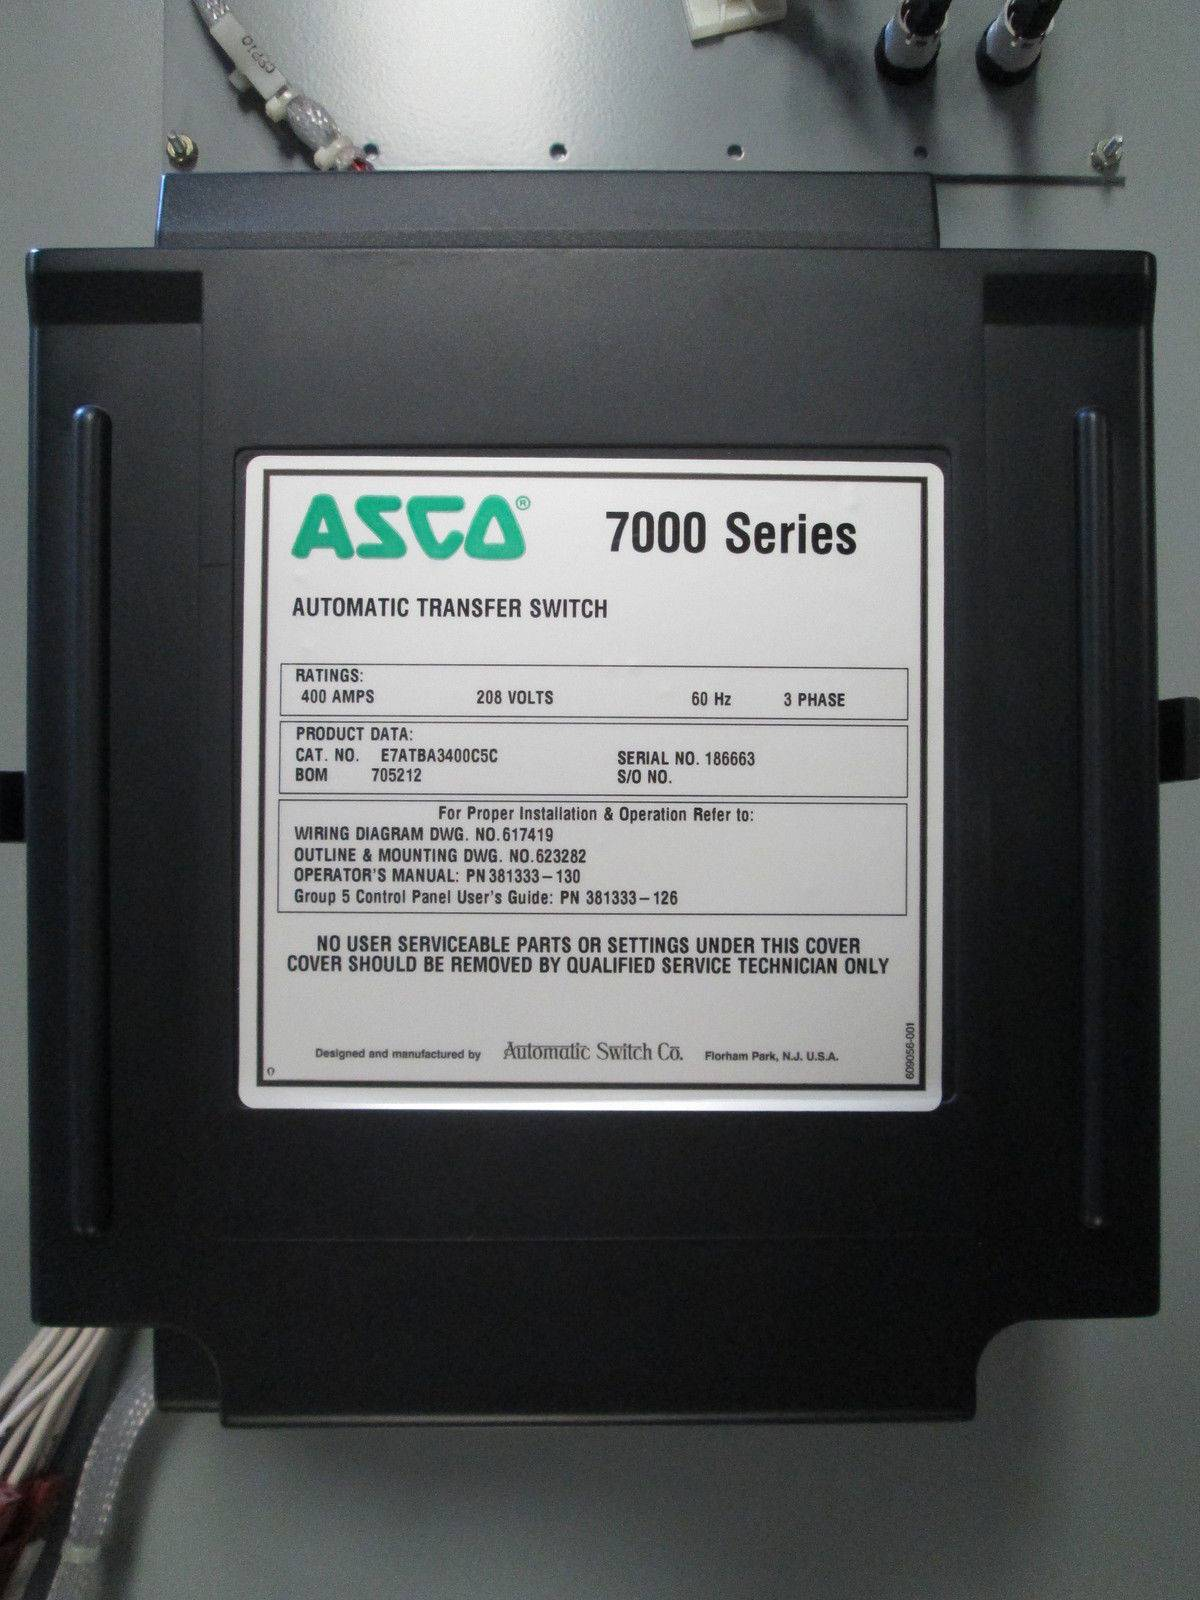 Asco 7000 Series Automatic Transfer Switch Wiring Diagram 200 Amp Diagrams Unique Composition The Wire Magnoxinfo